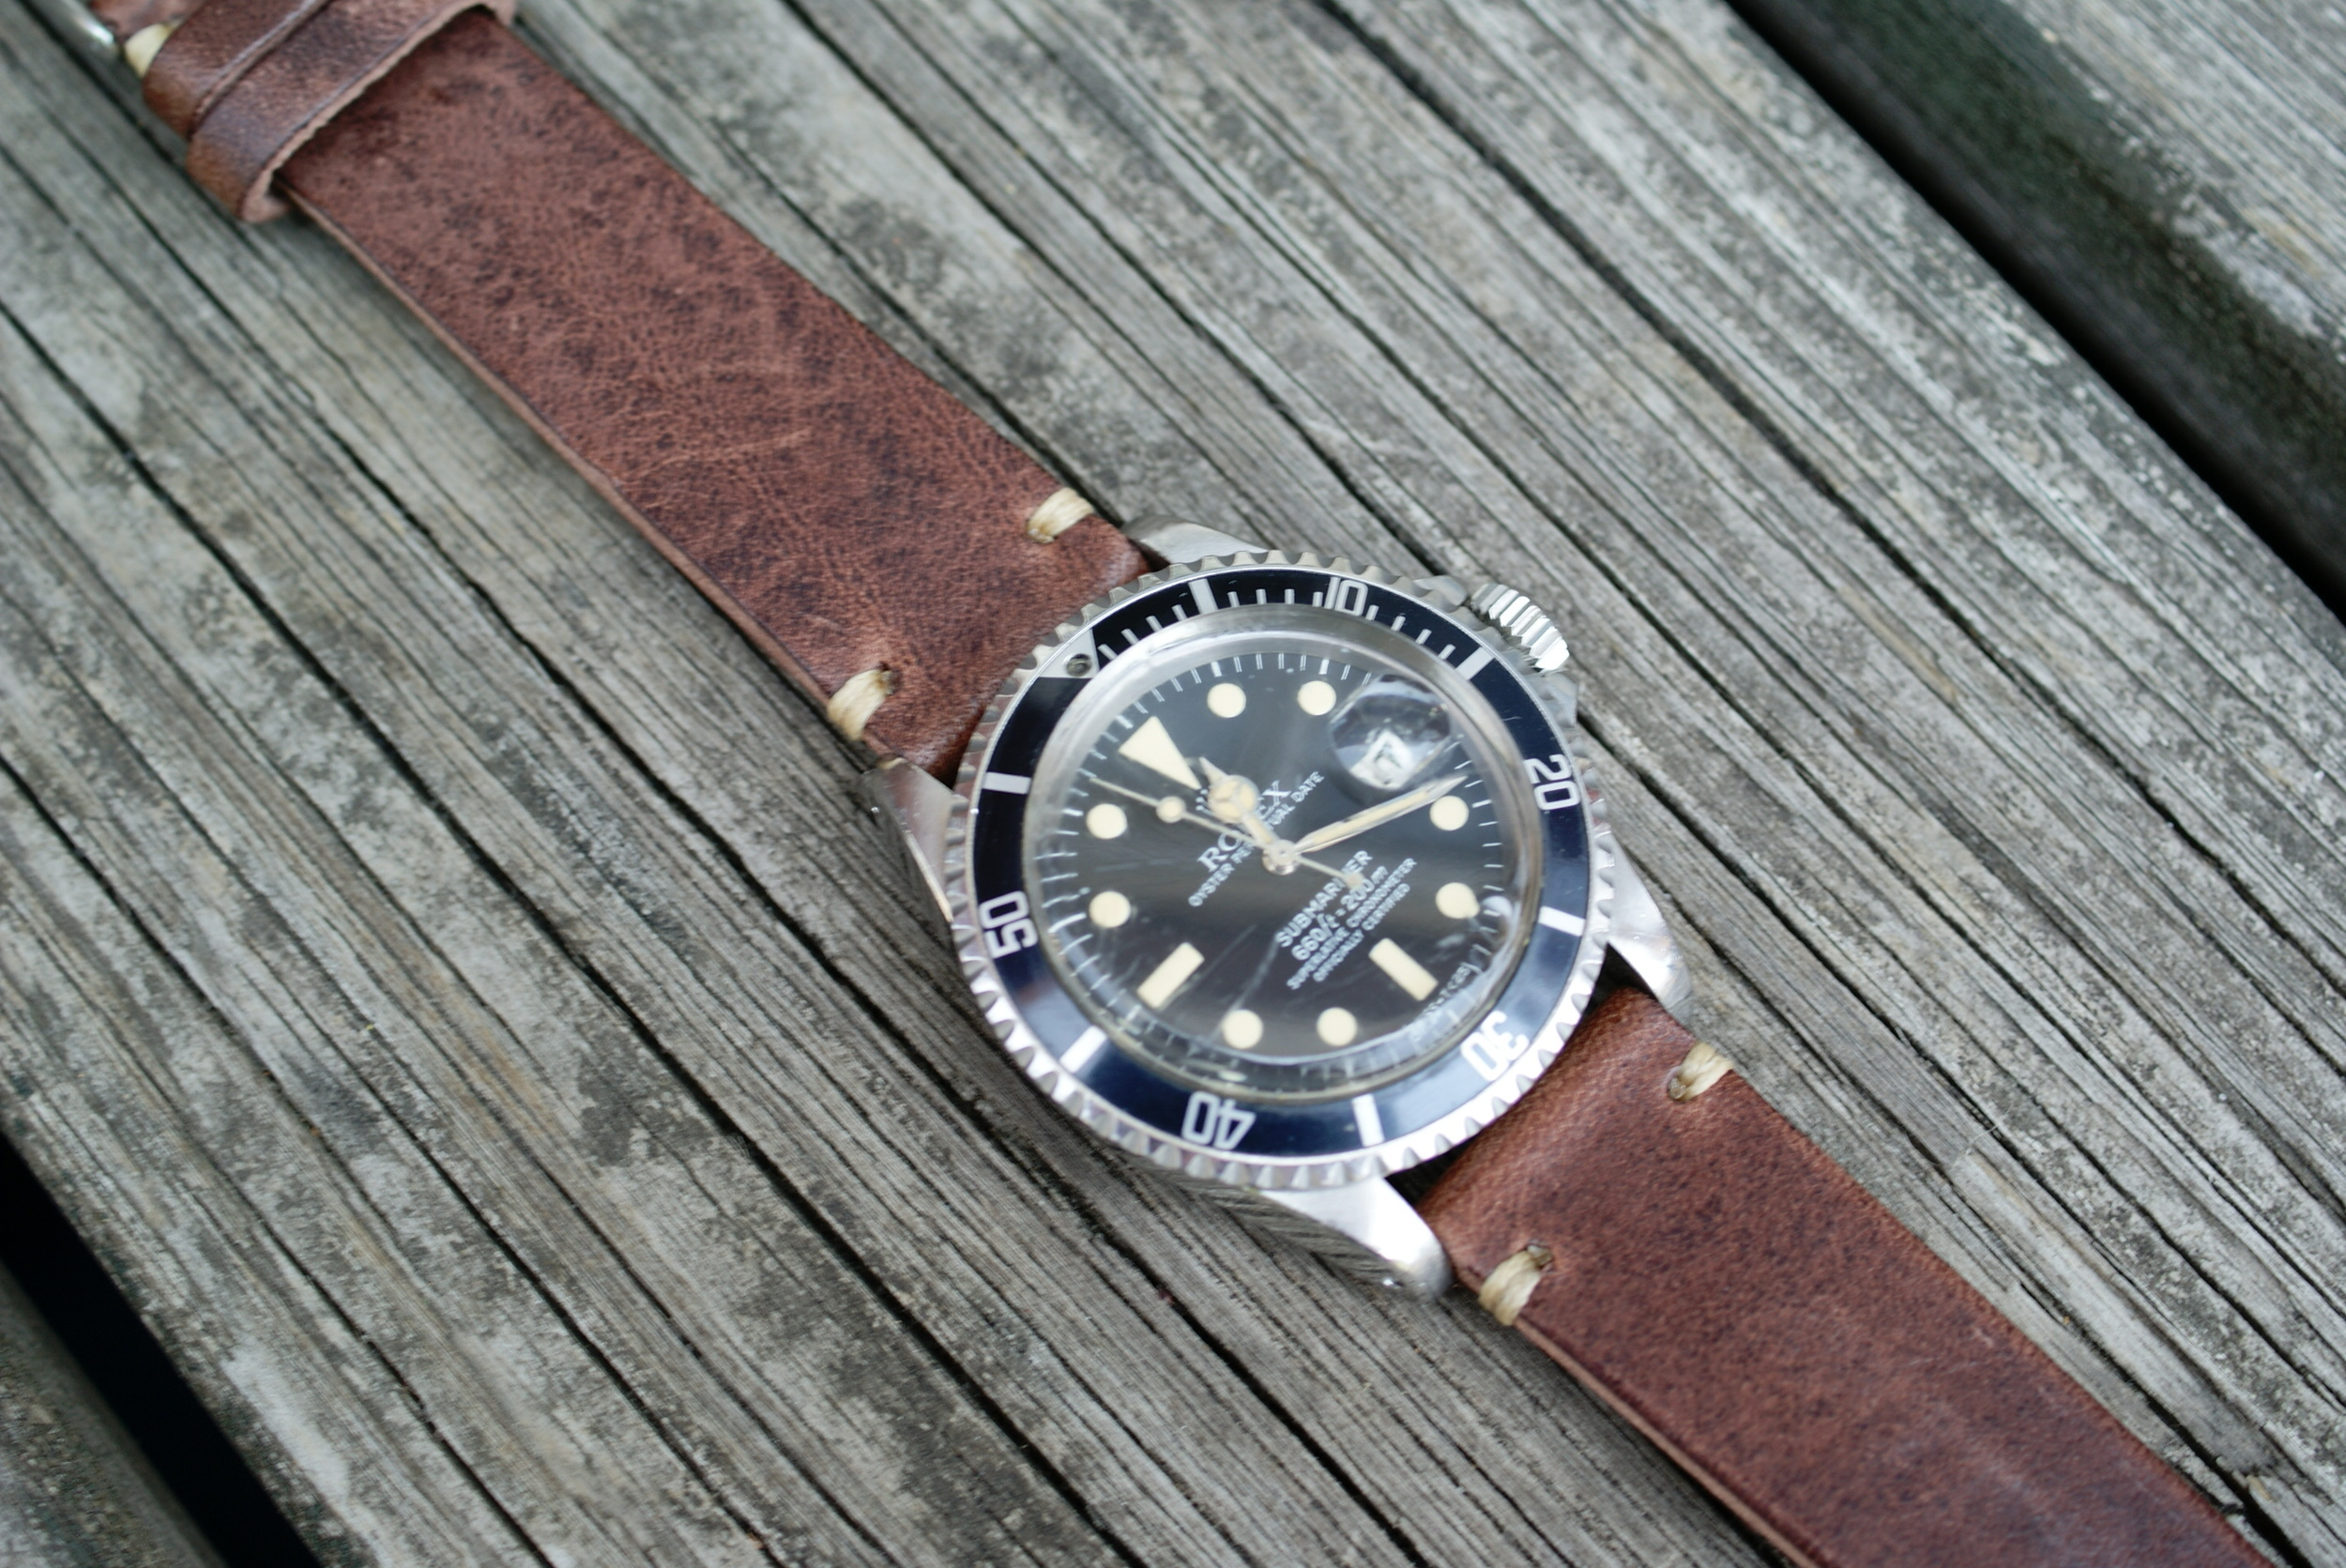 Rolex 1680 Submariner on a classic vintage leather strap.